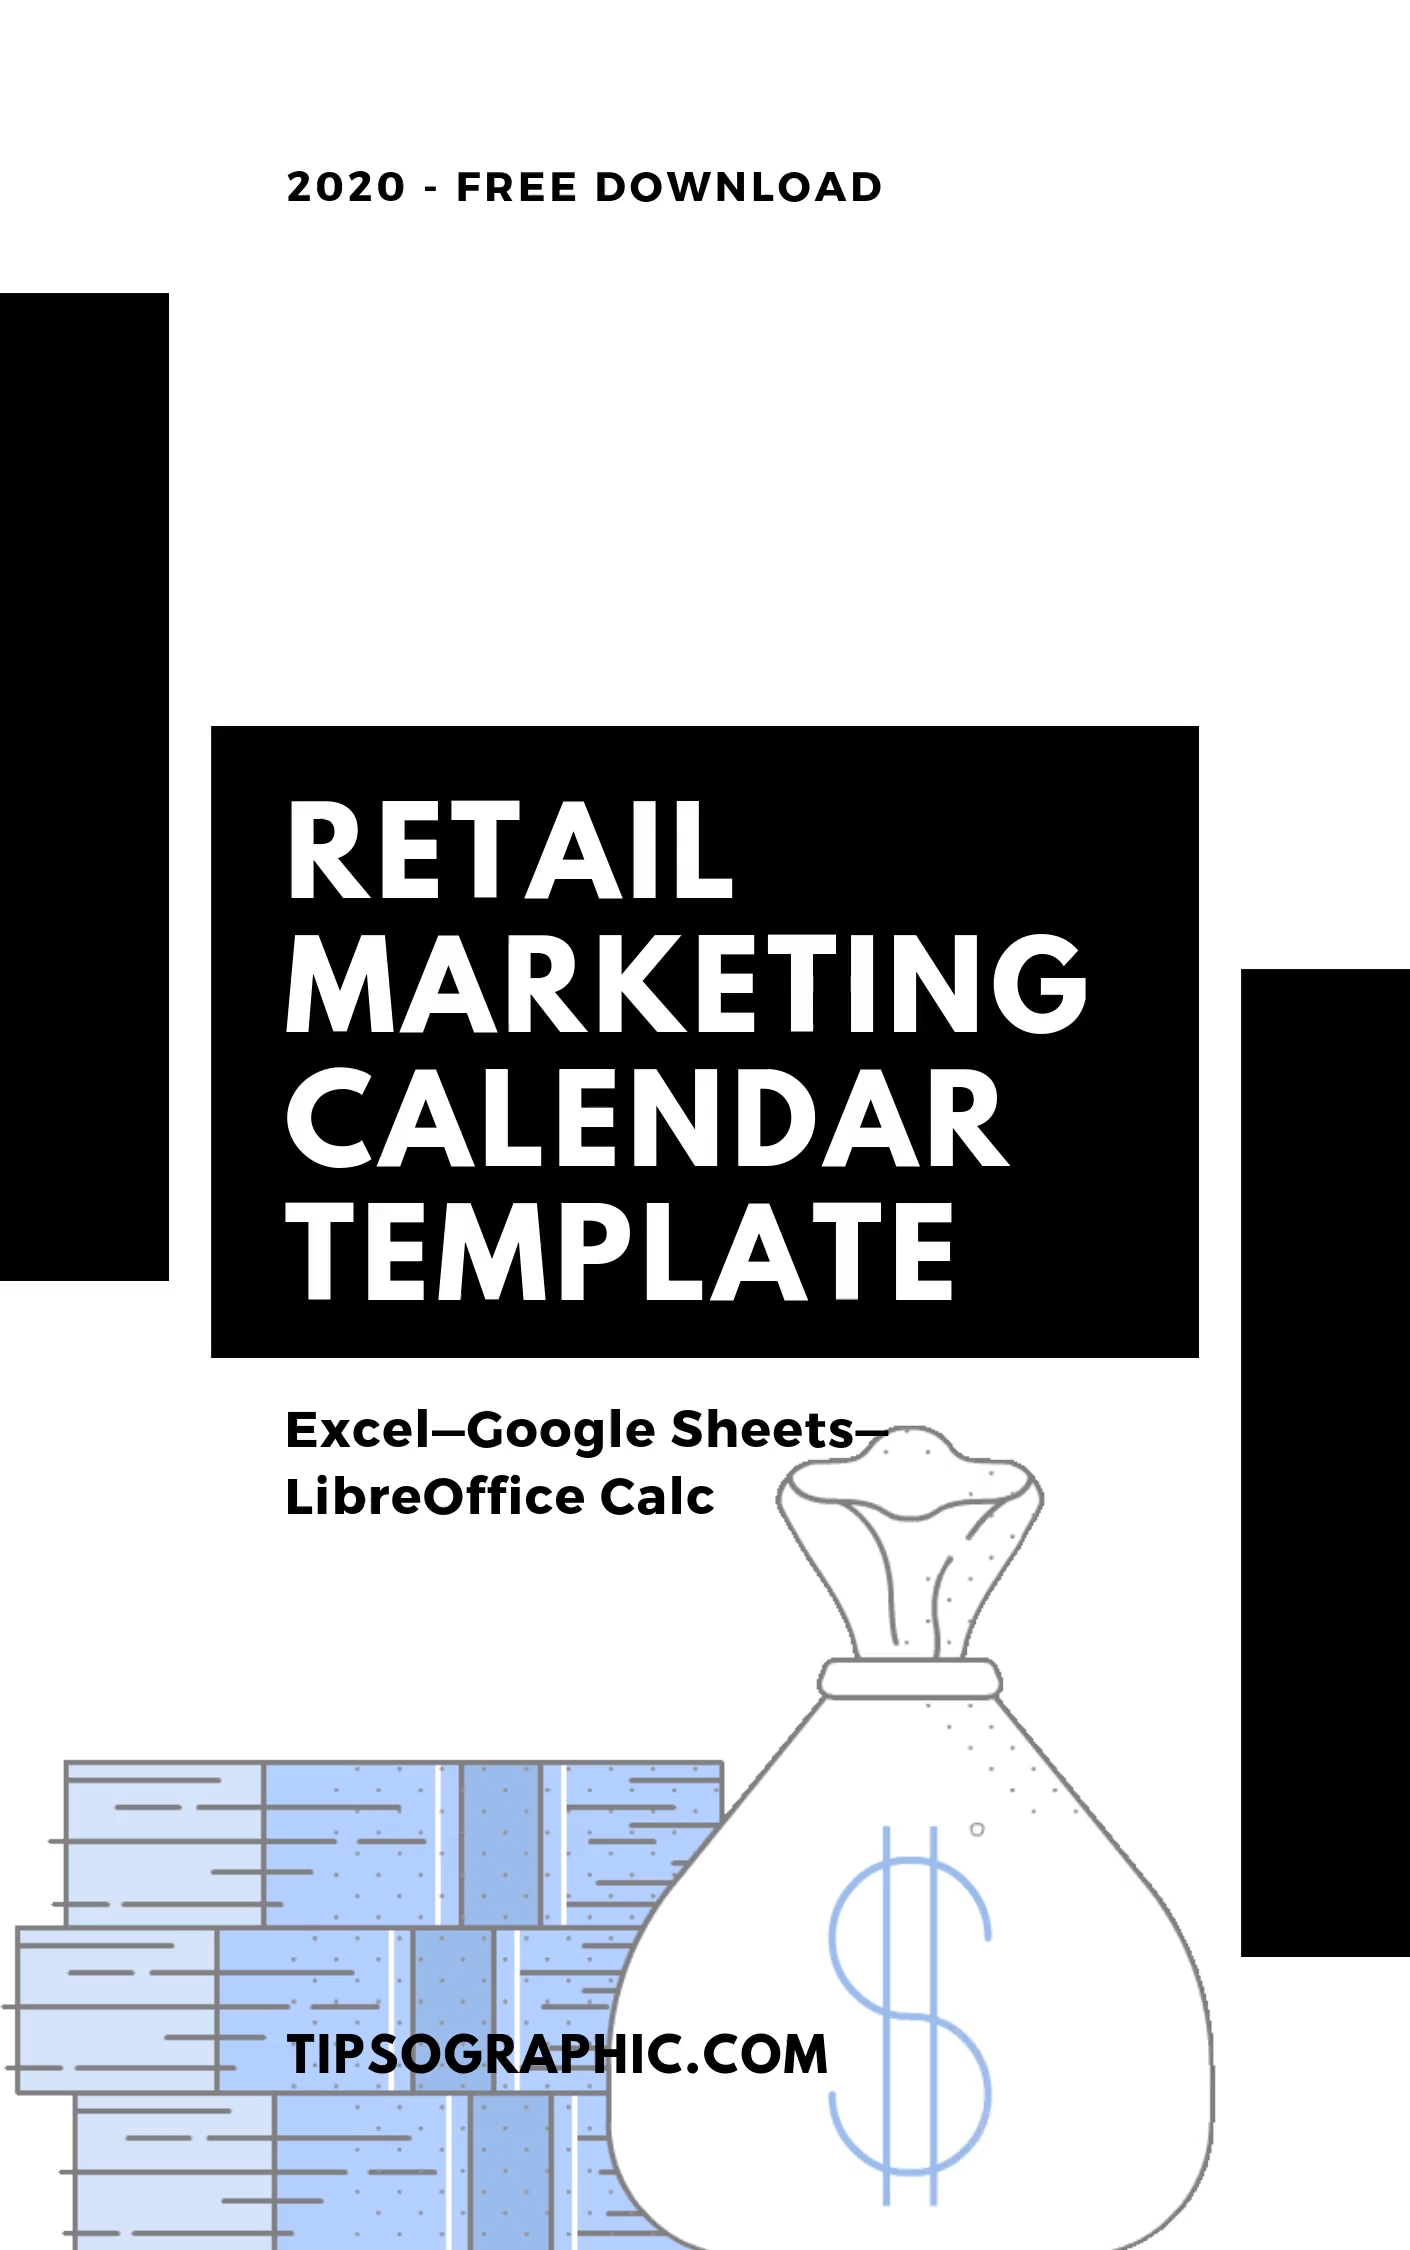 Retail Calendar 2022.Retail Marketing Calendar Template For Excel Free Download 2020 2021 2022 Tipsographic Video Video Marketing Calendar Template Marketing Calendar Social Media Calendar Template